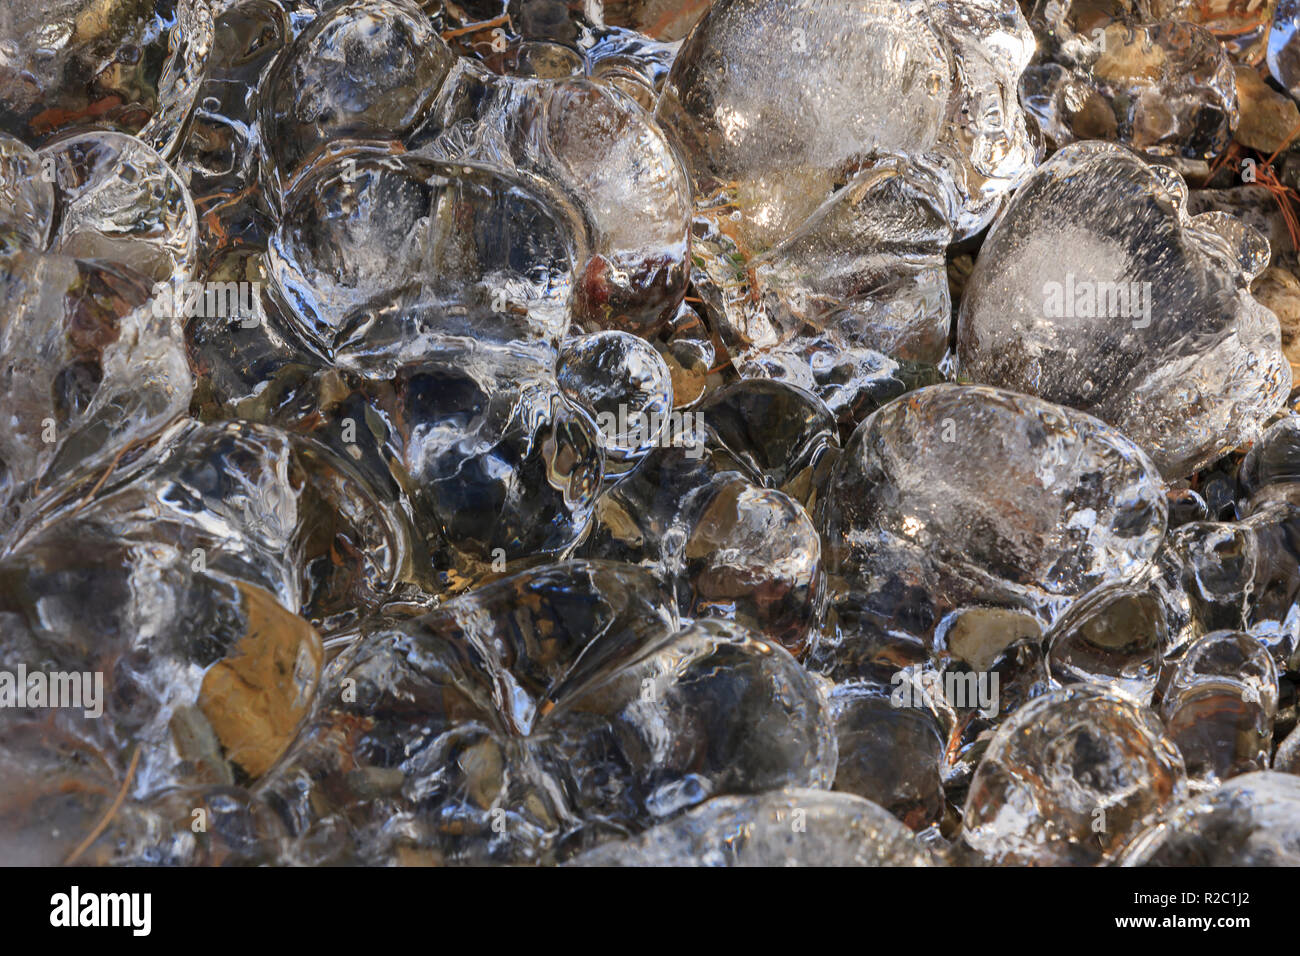 A close up abstract of ice formations from running water in winter. - Stock Image